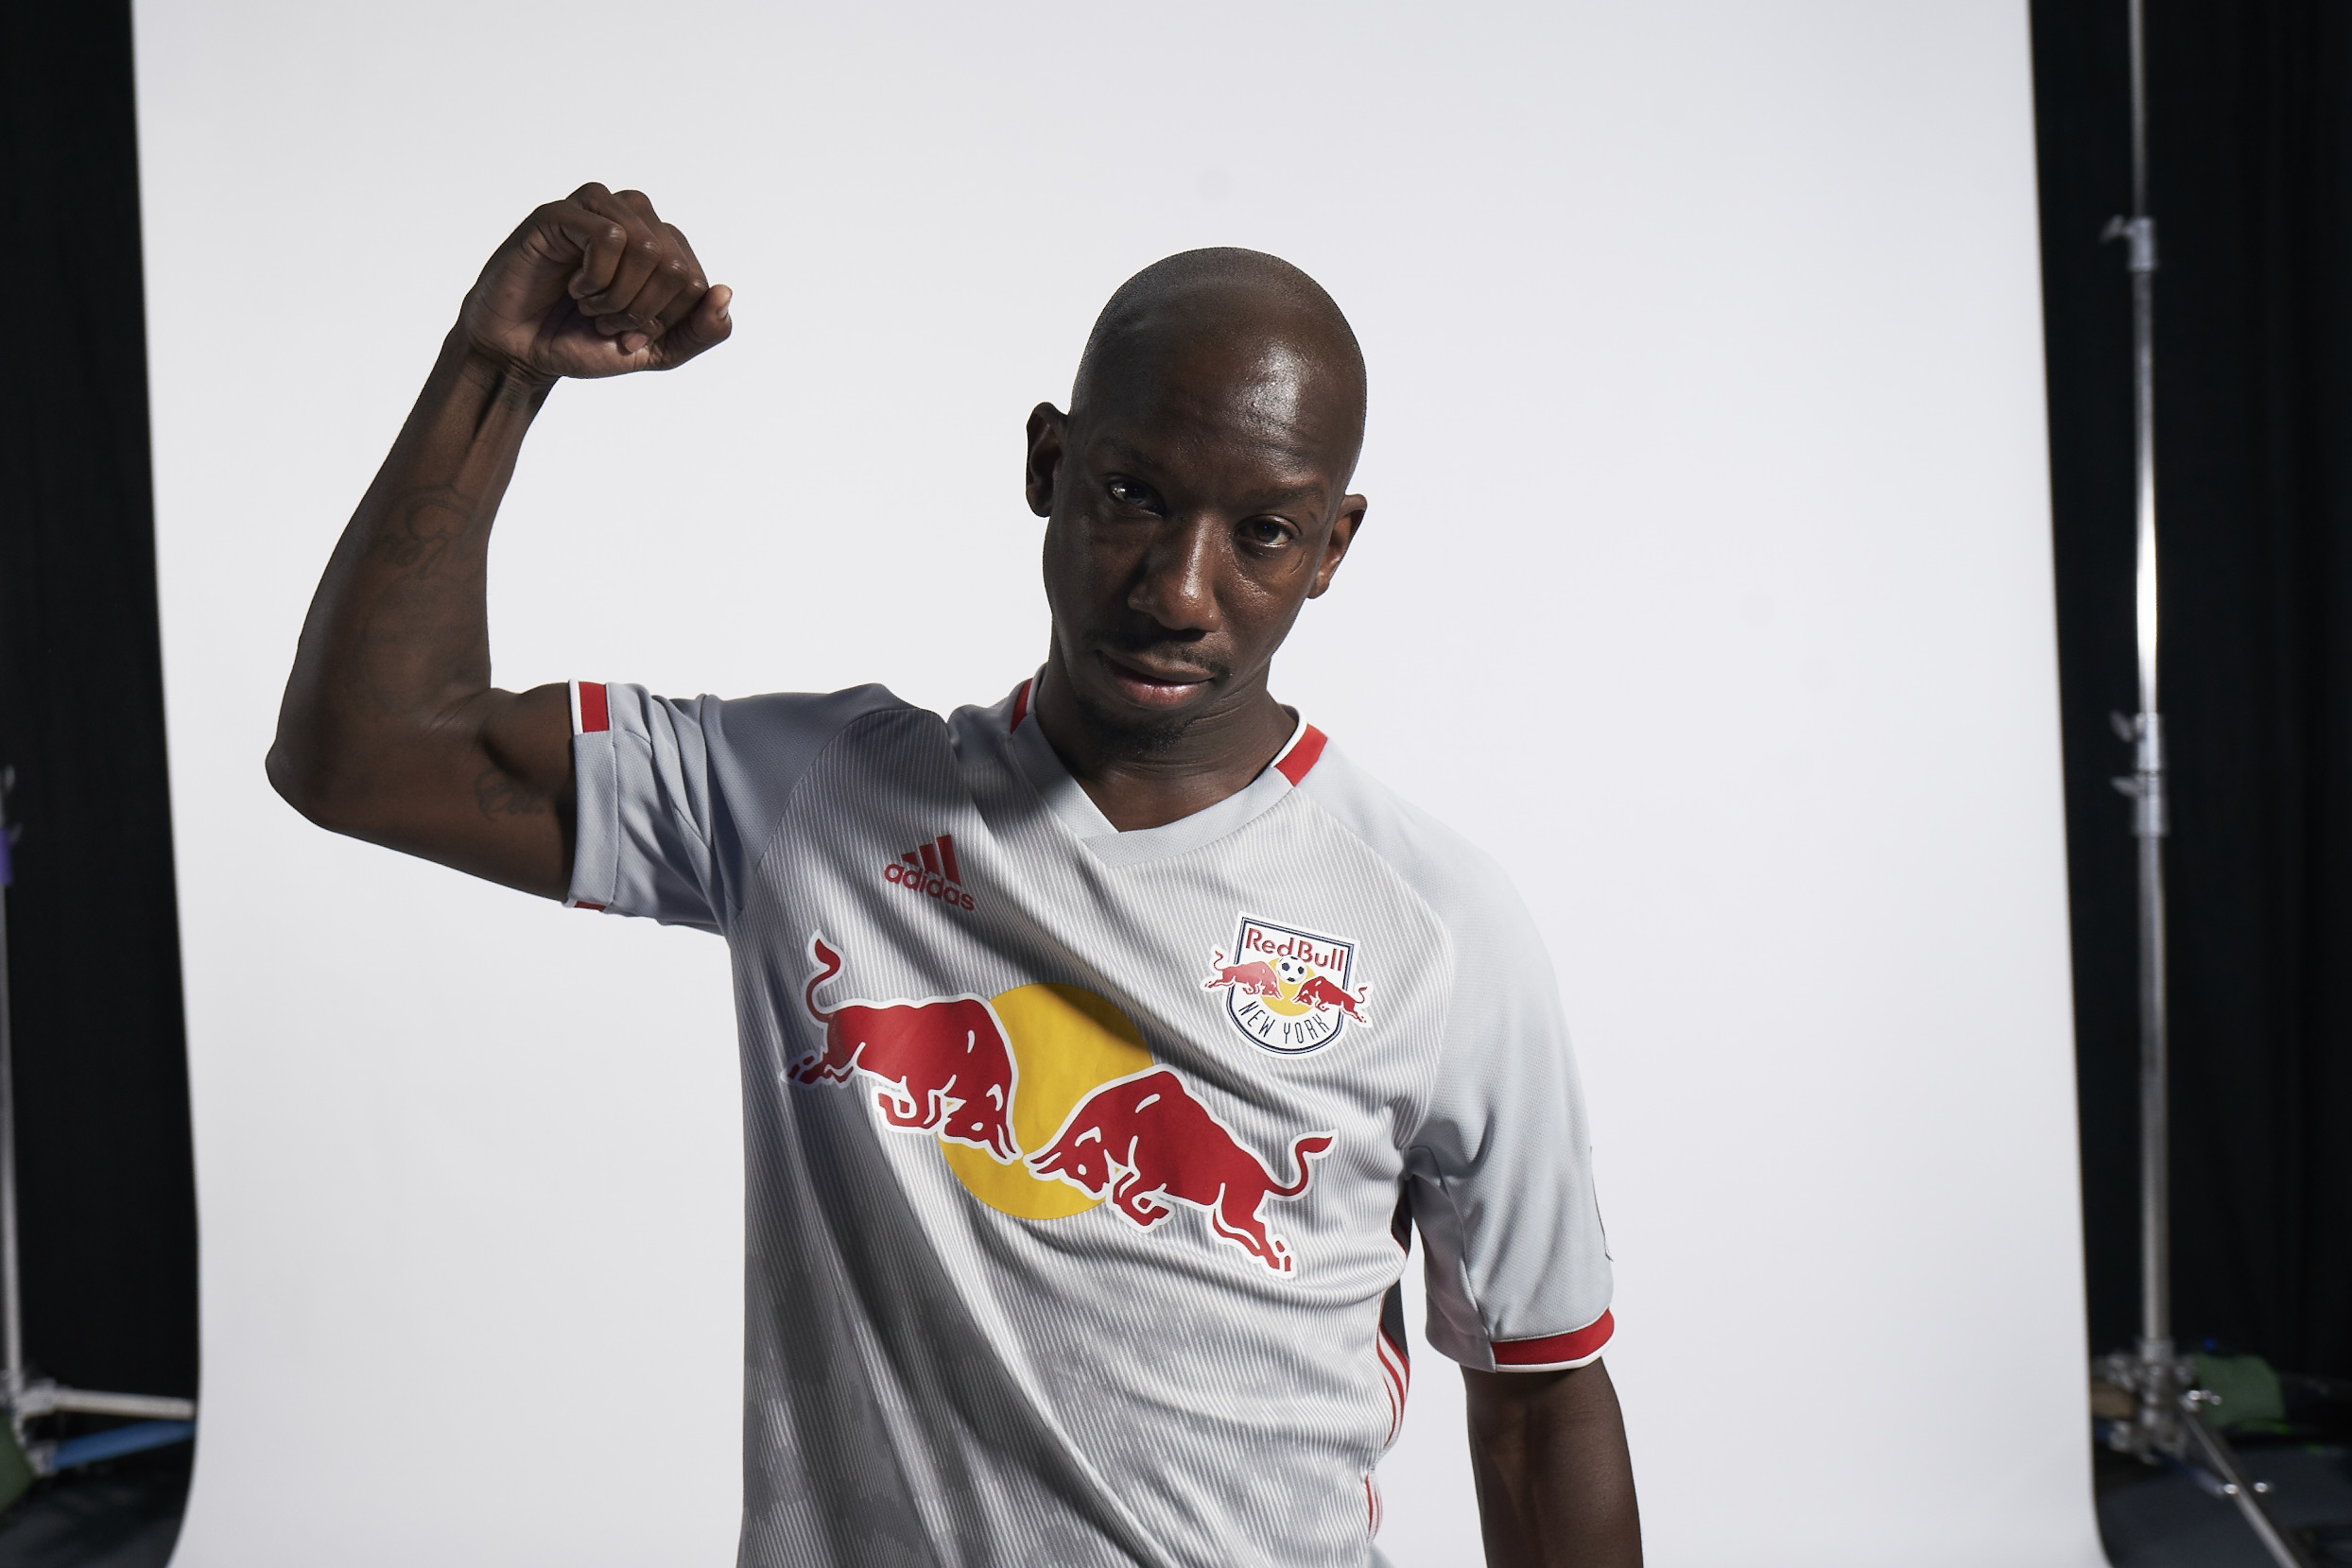 Bradley_Wright_Phillips_RBNY-3918.jpg